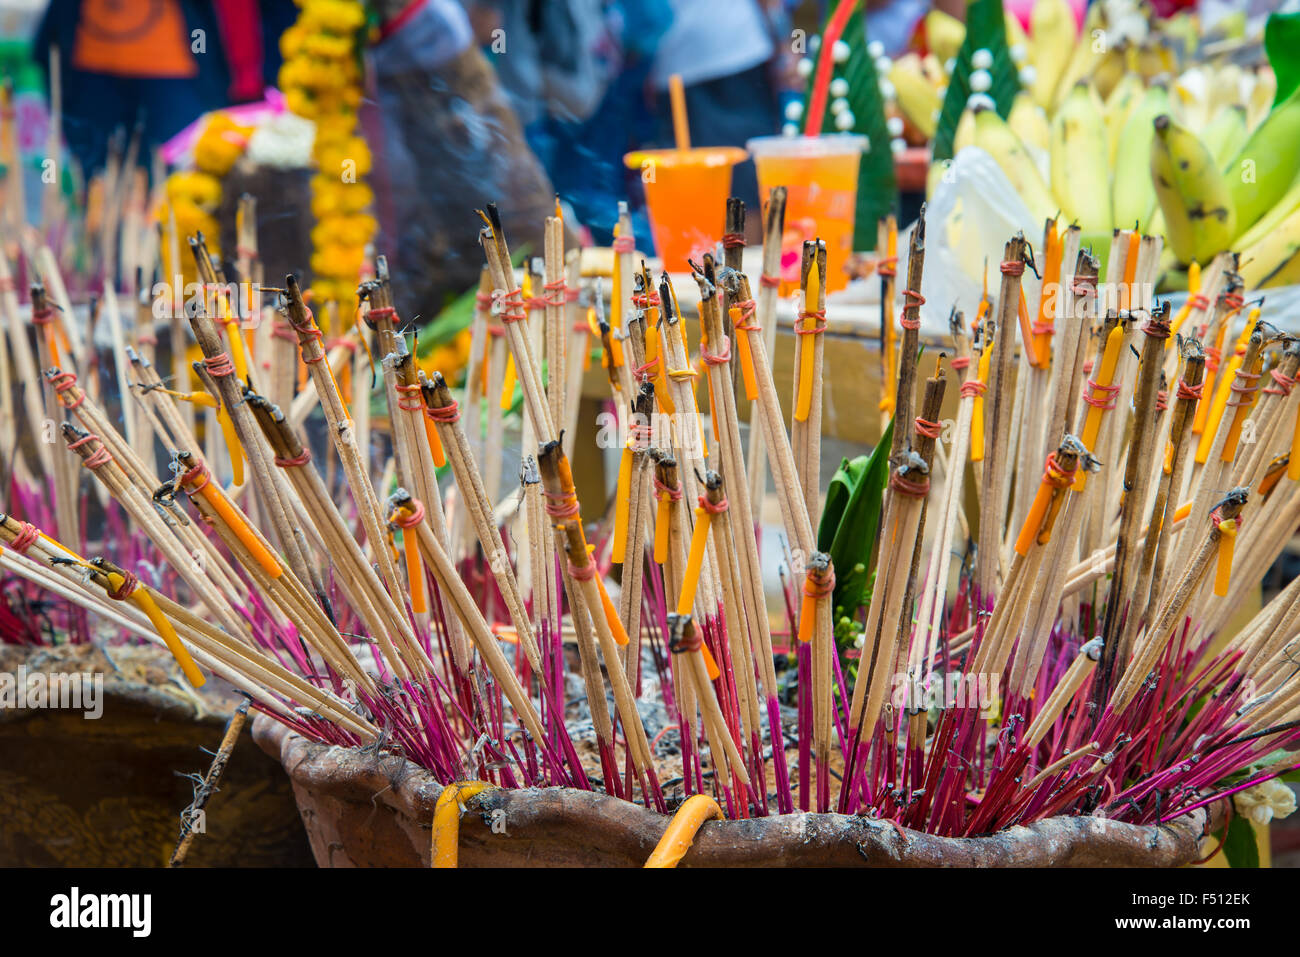 Incense to worship the sacred beliefs of Buddhists. - Stock Image